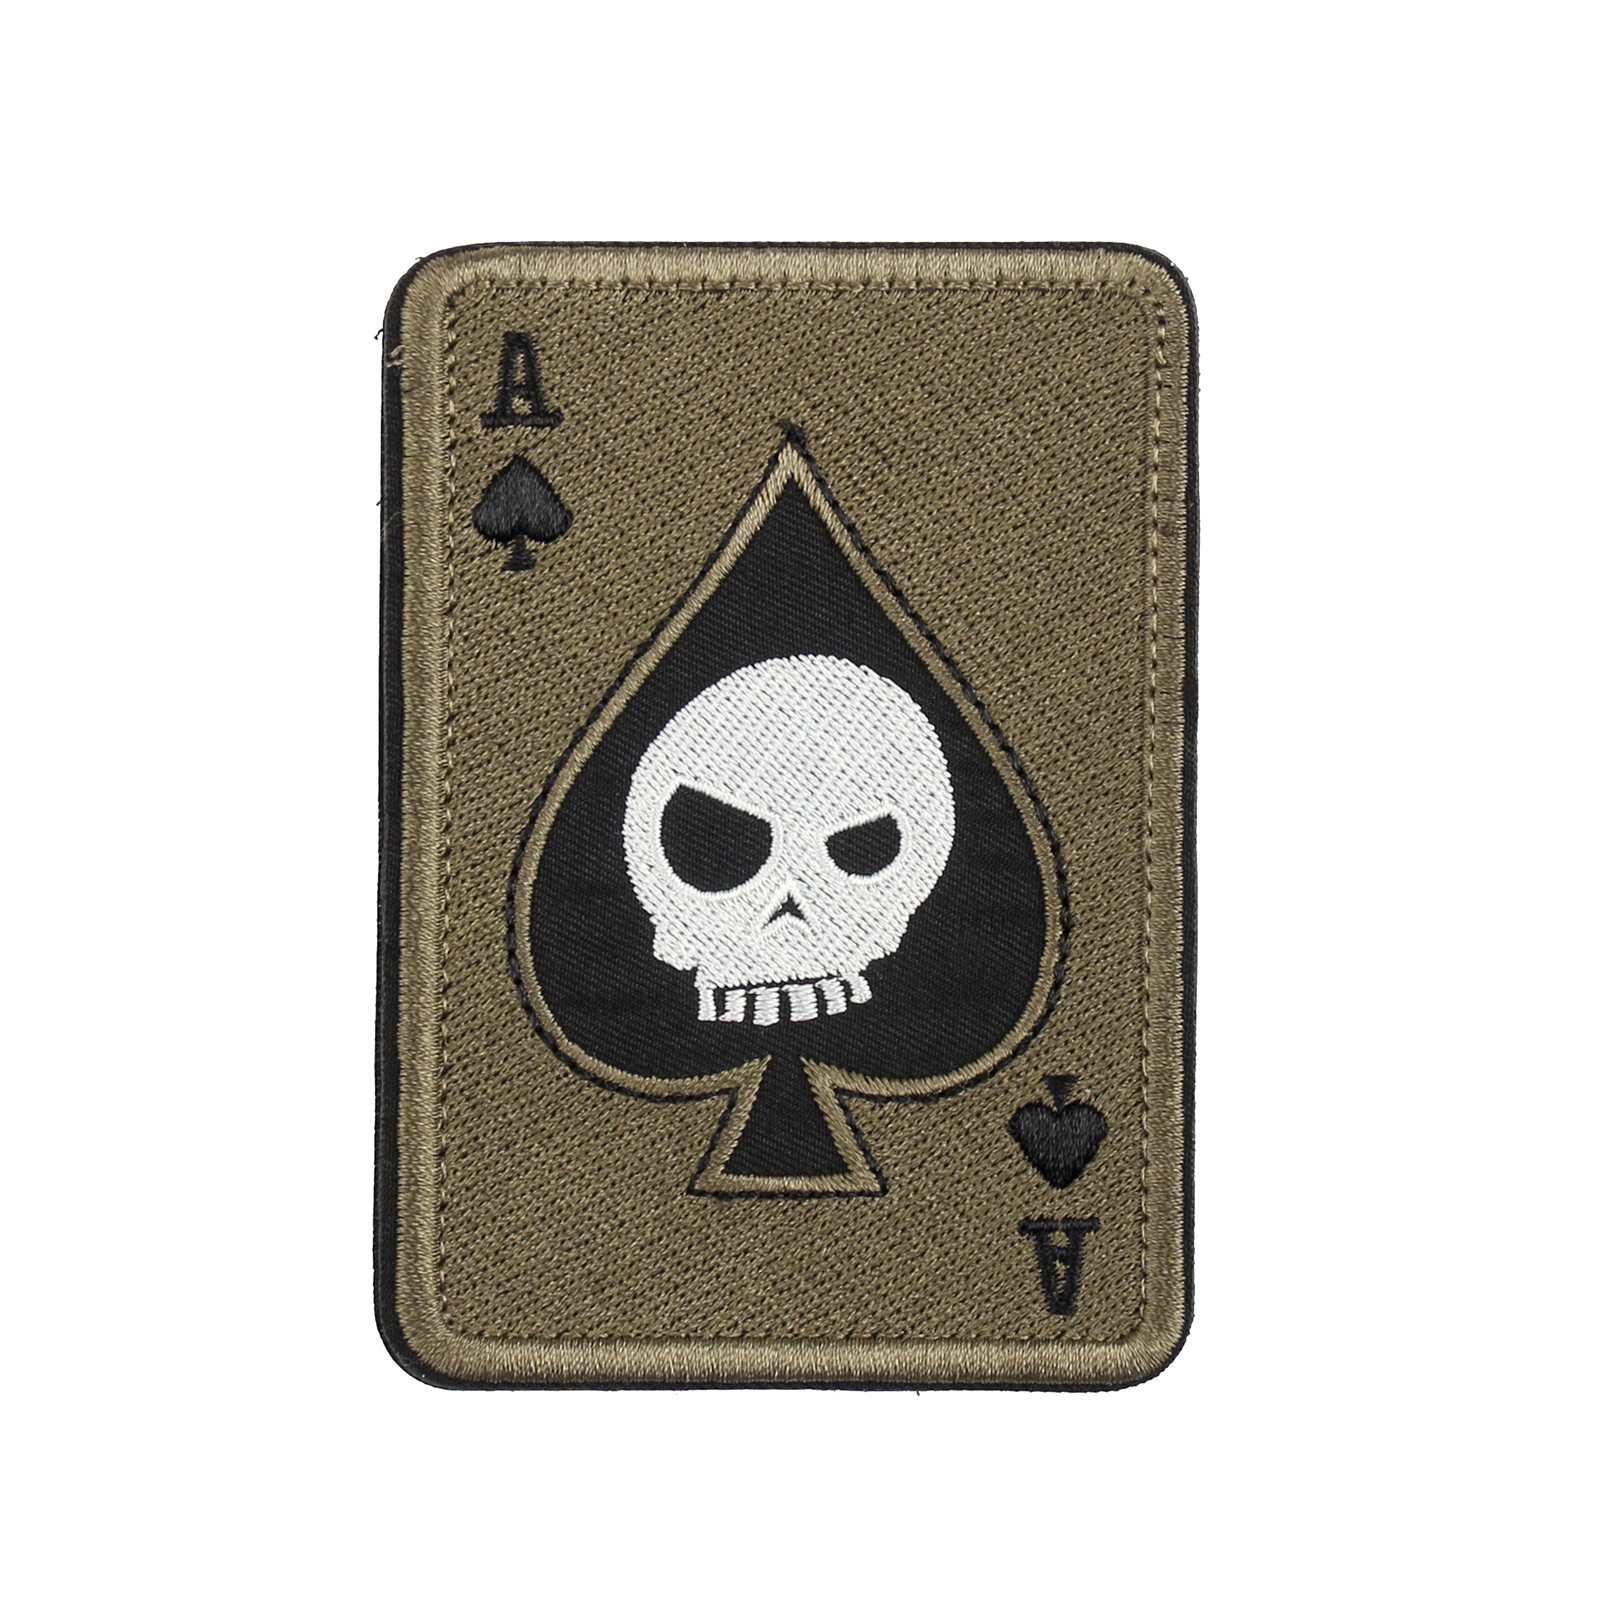 Ace Of Spades Death Skull Card USA Army Tactical Morale